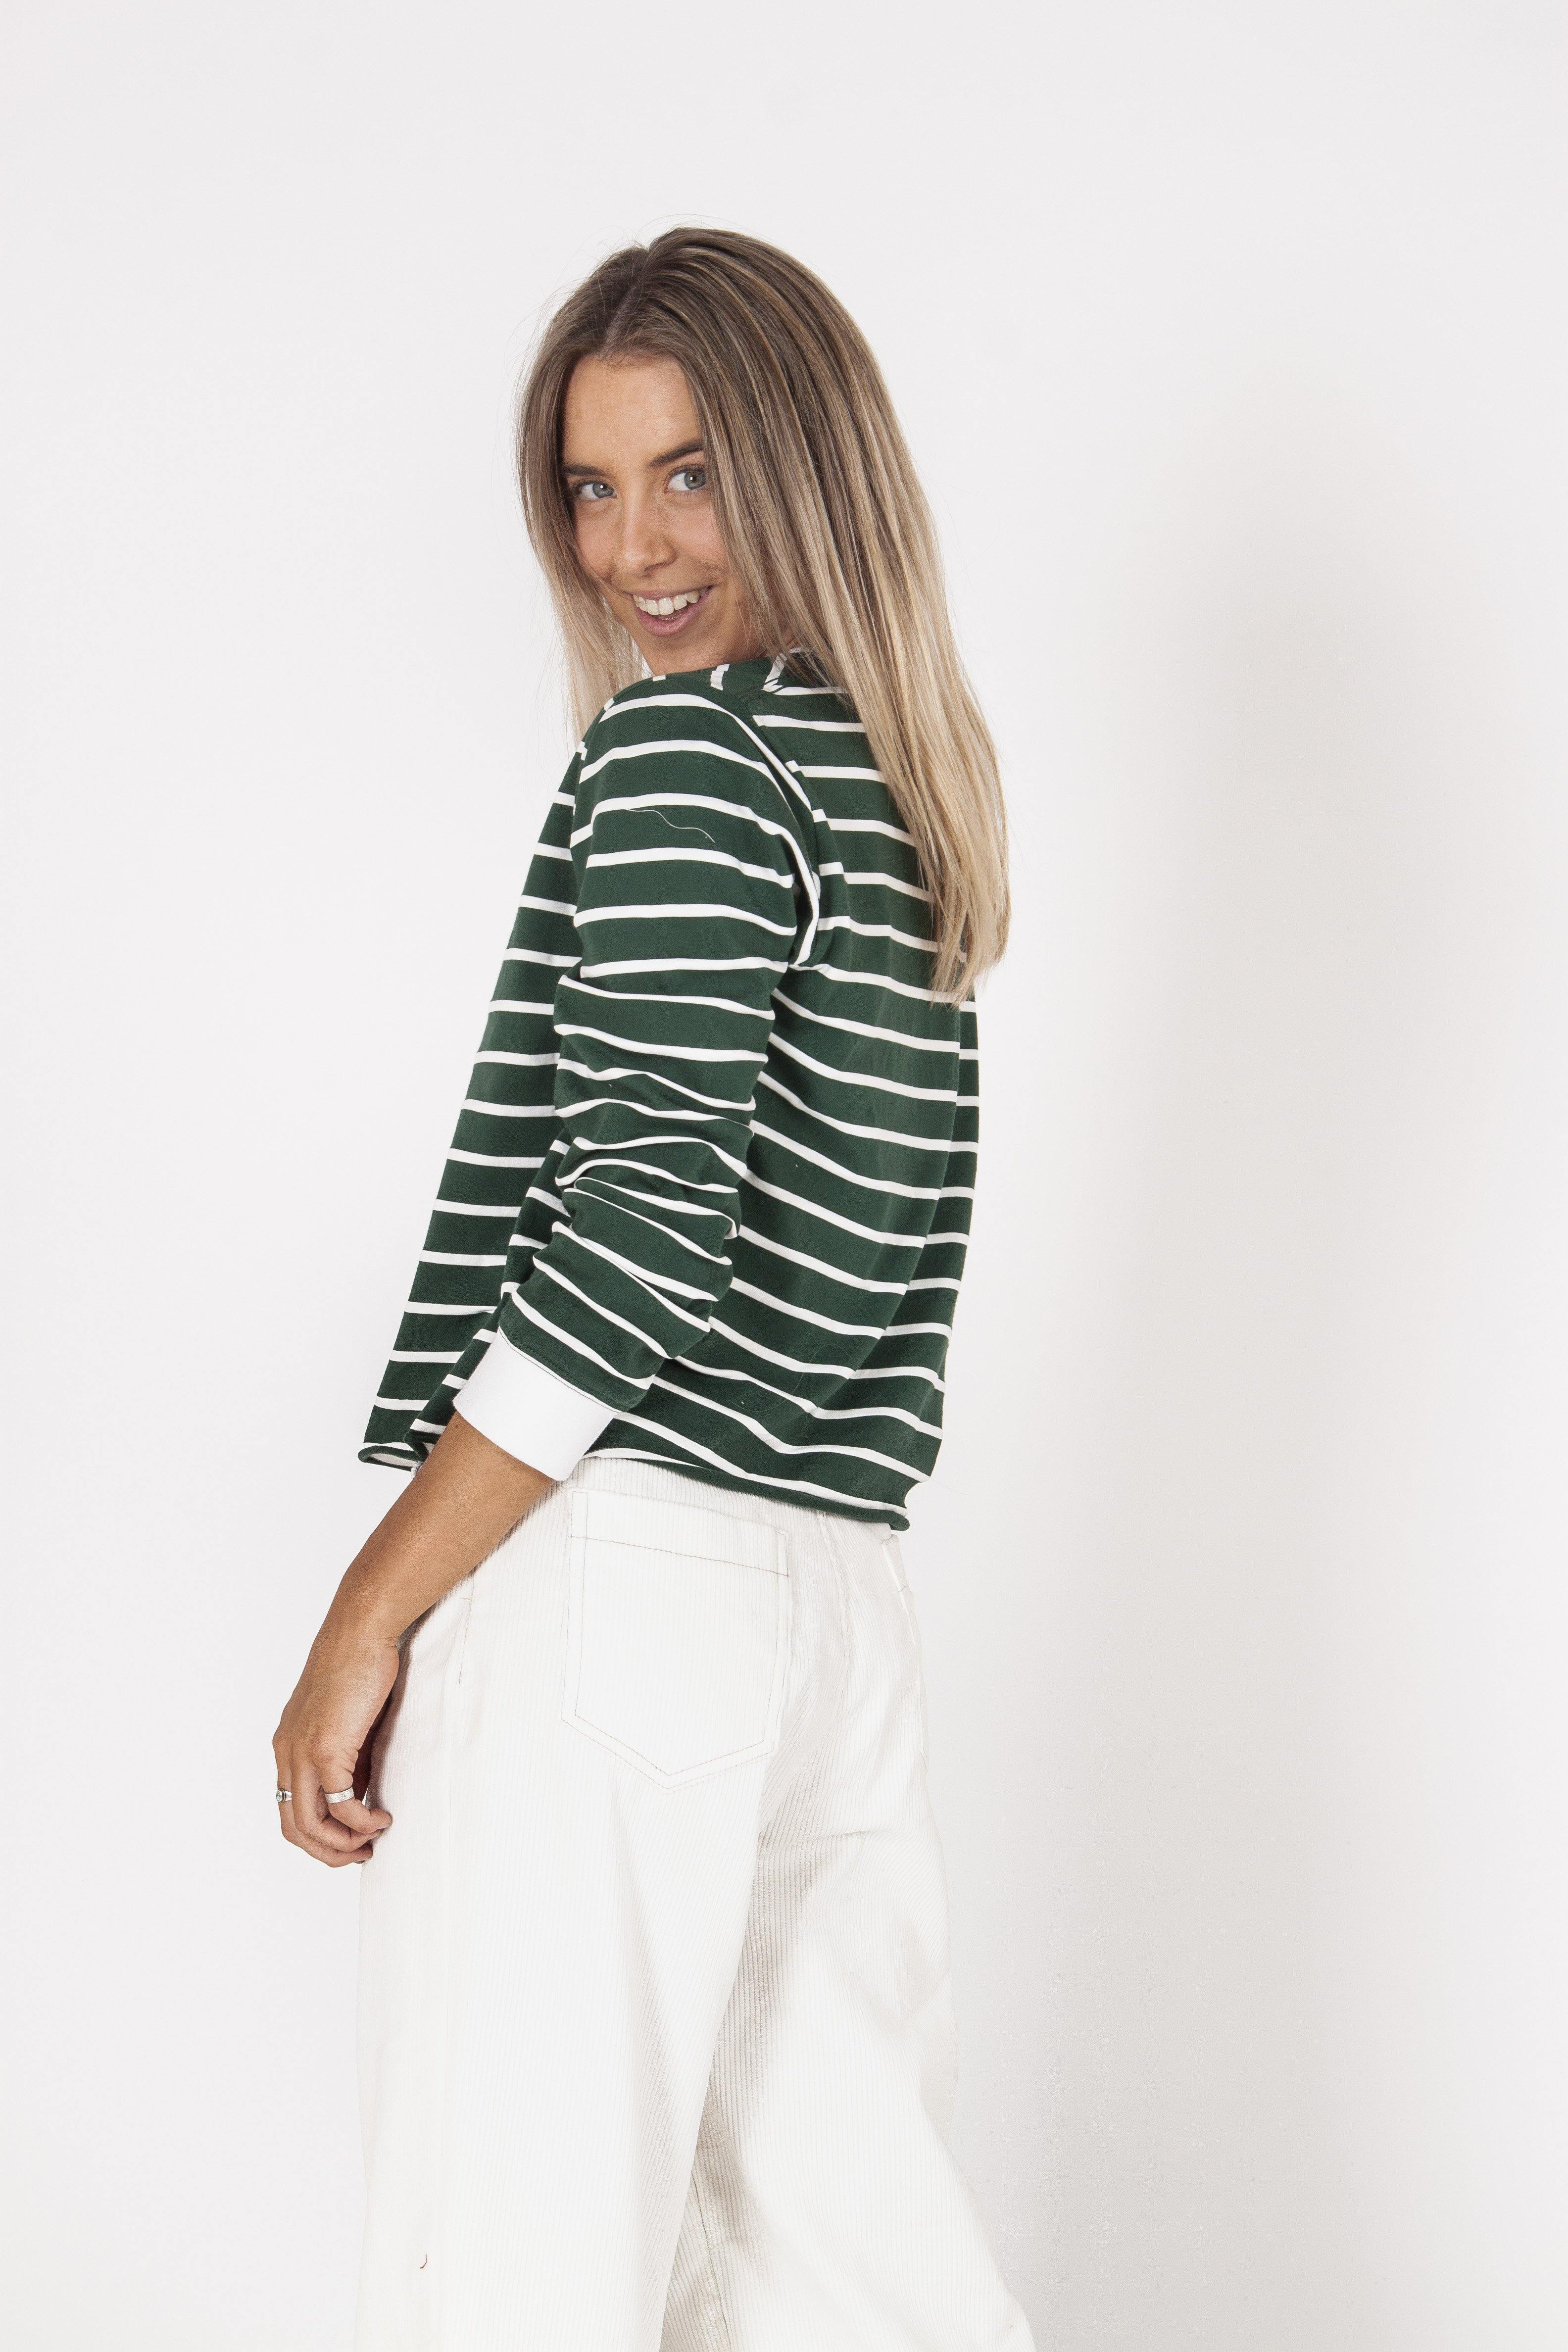 XANTHE LONG SLEEVE TEE - GREEN STRIPE